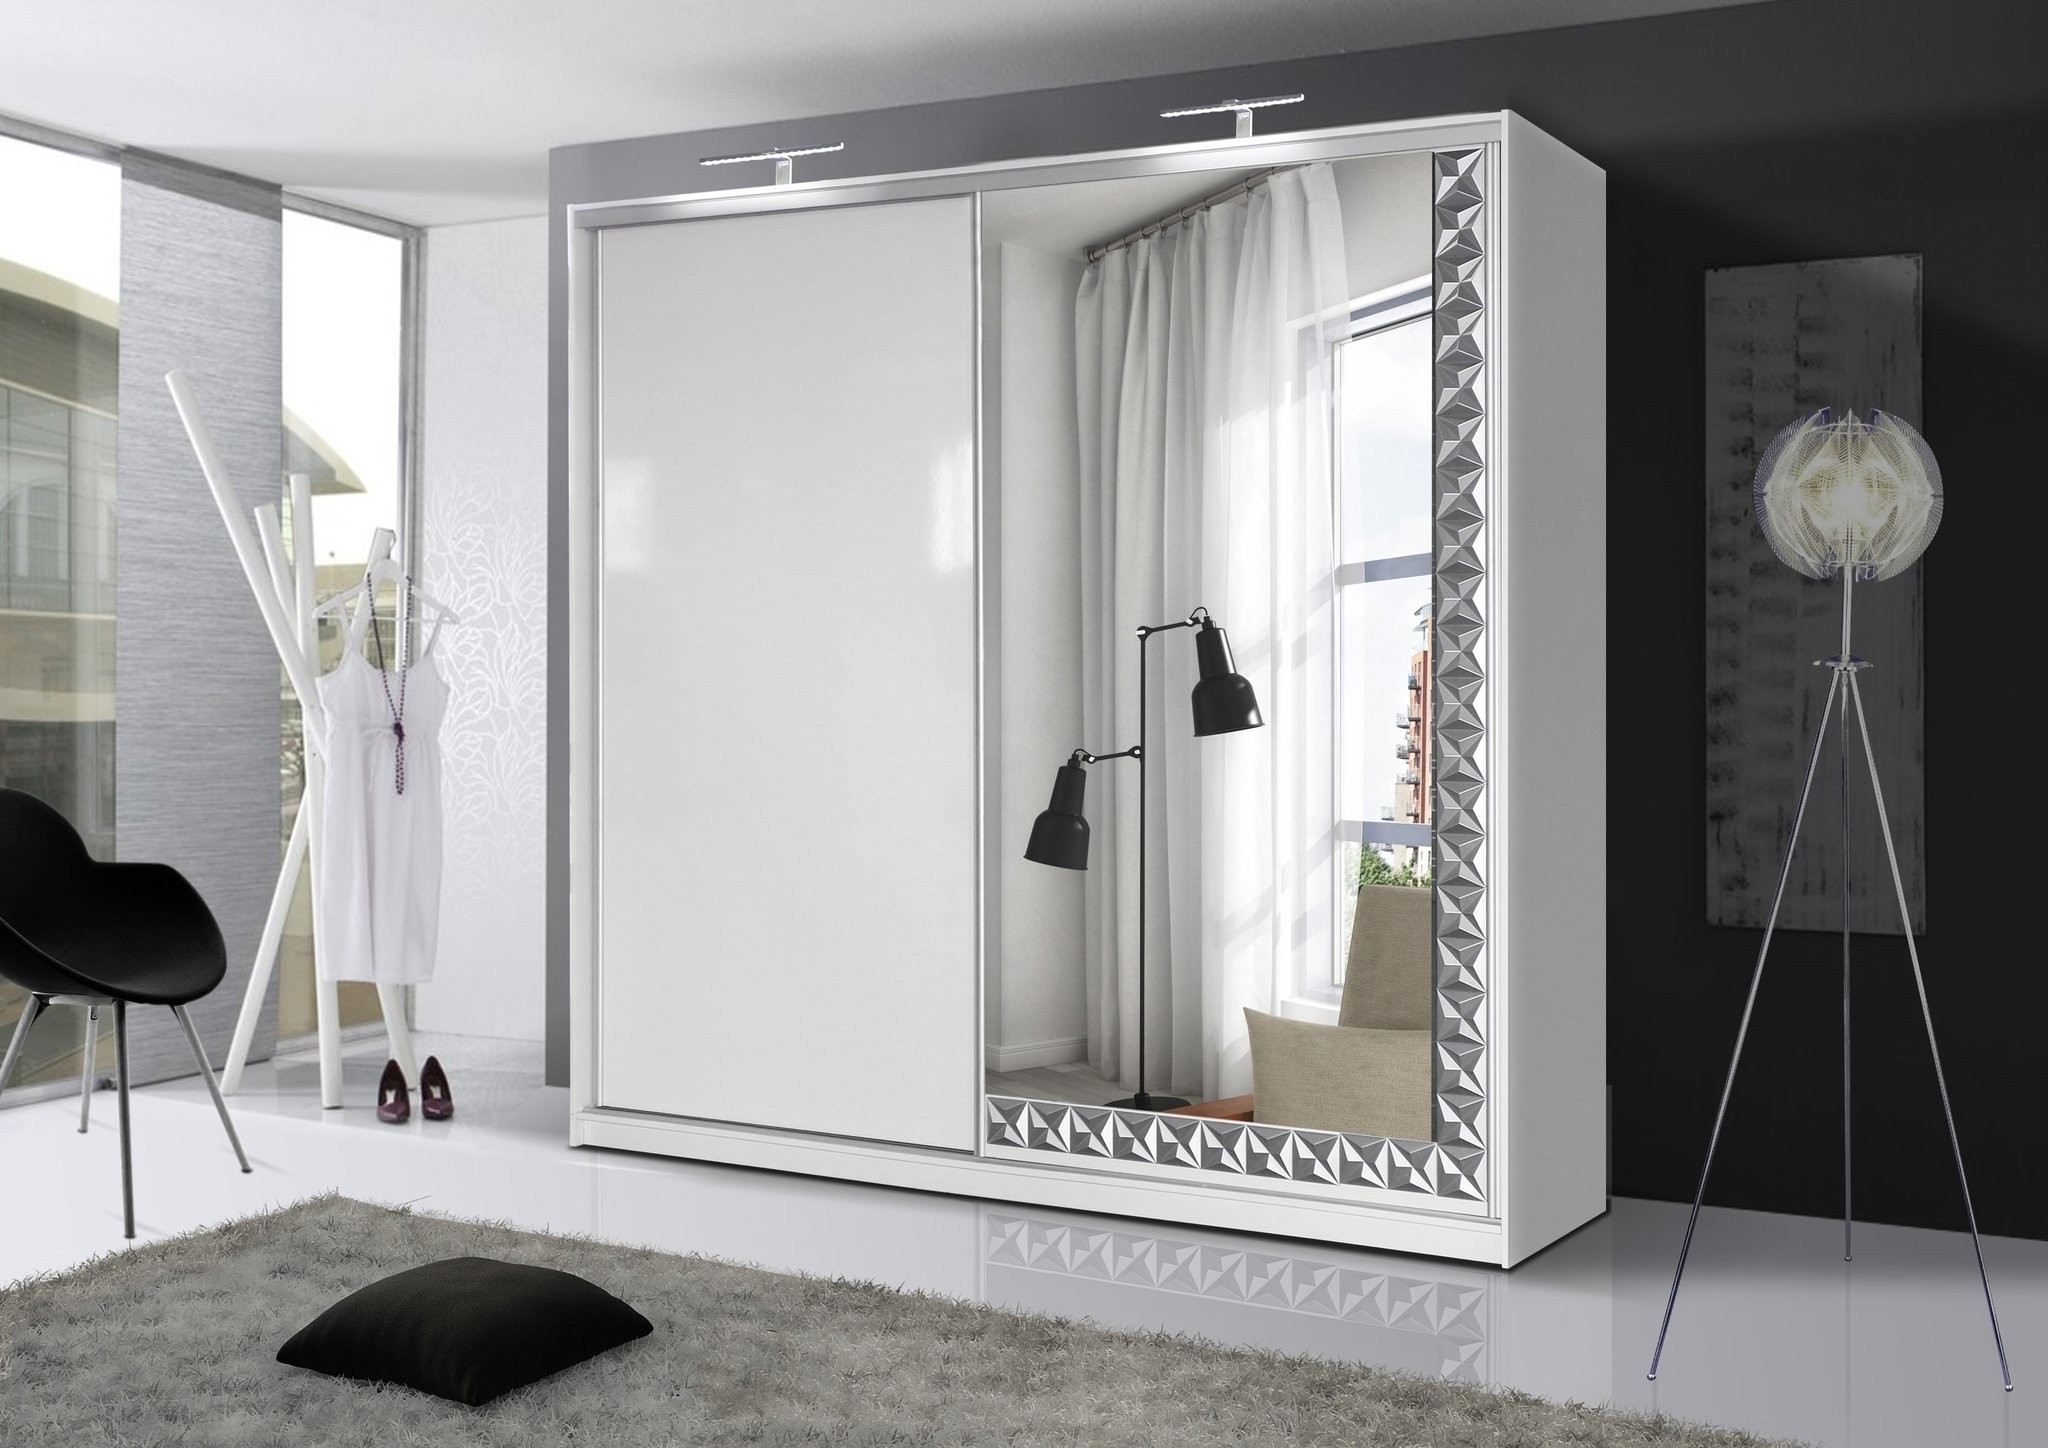 Favorite Palermo High Gloss Mirror Sliding Wardrobe – Cheap Home Furniture Throughout White High Gloss Sliding Wardrobes (View 4 of 15)